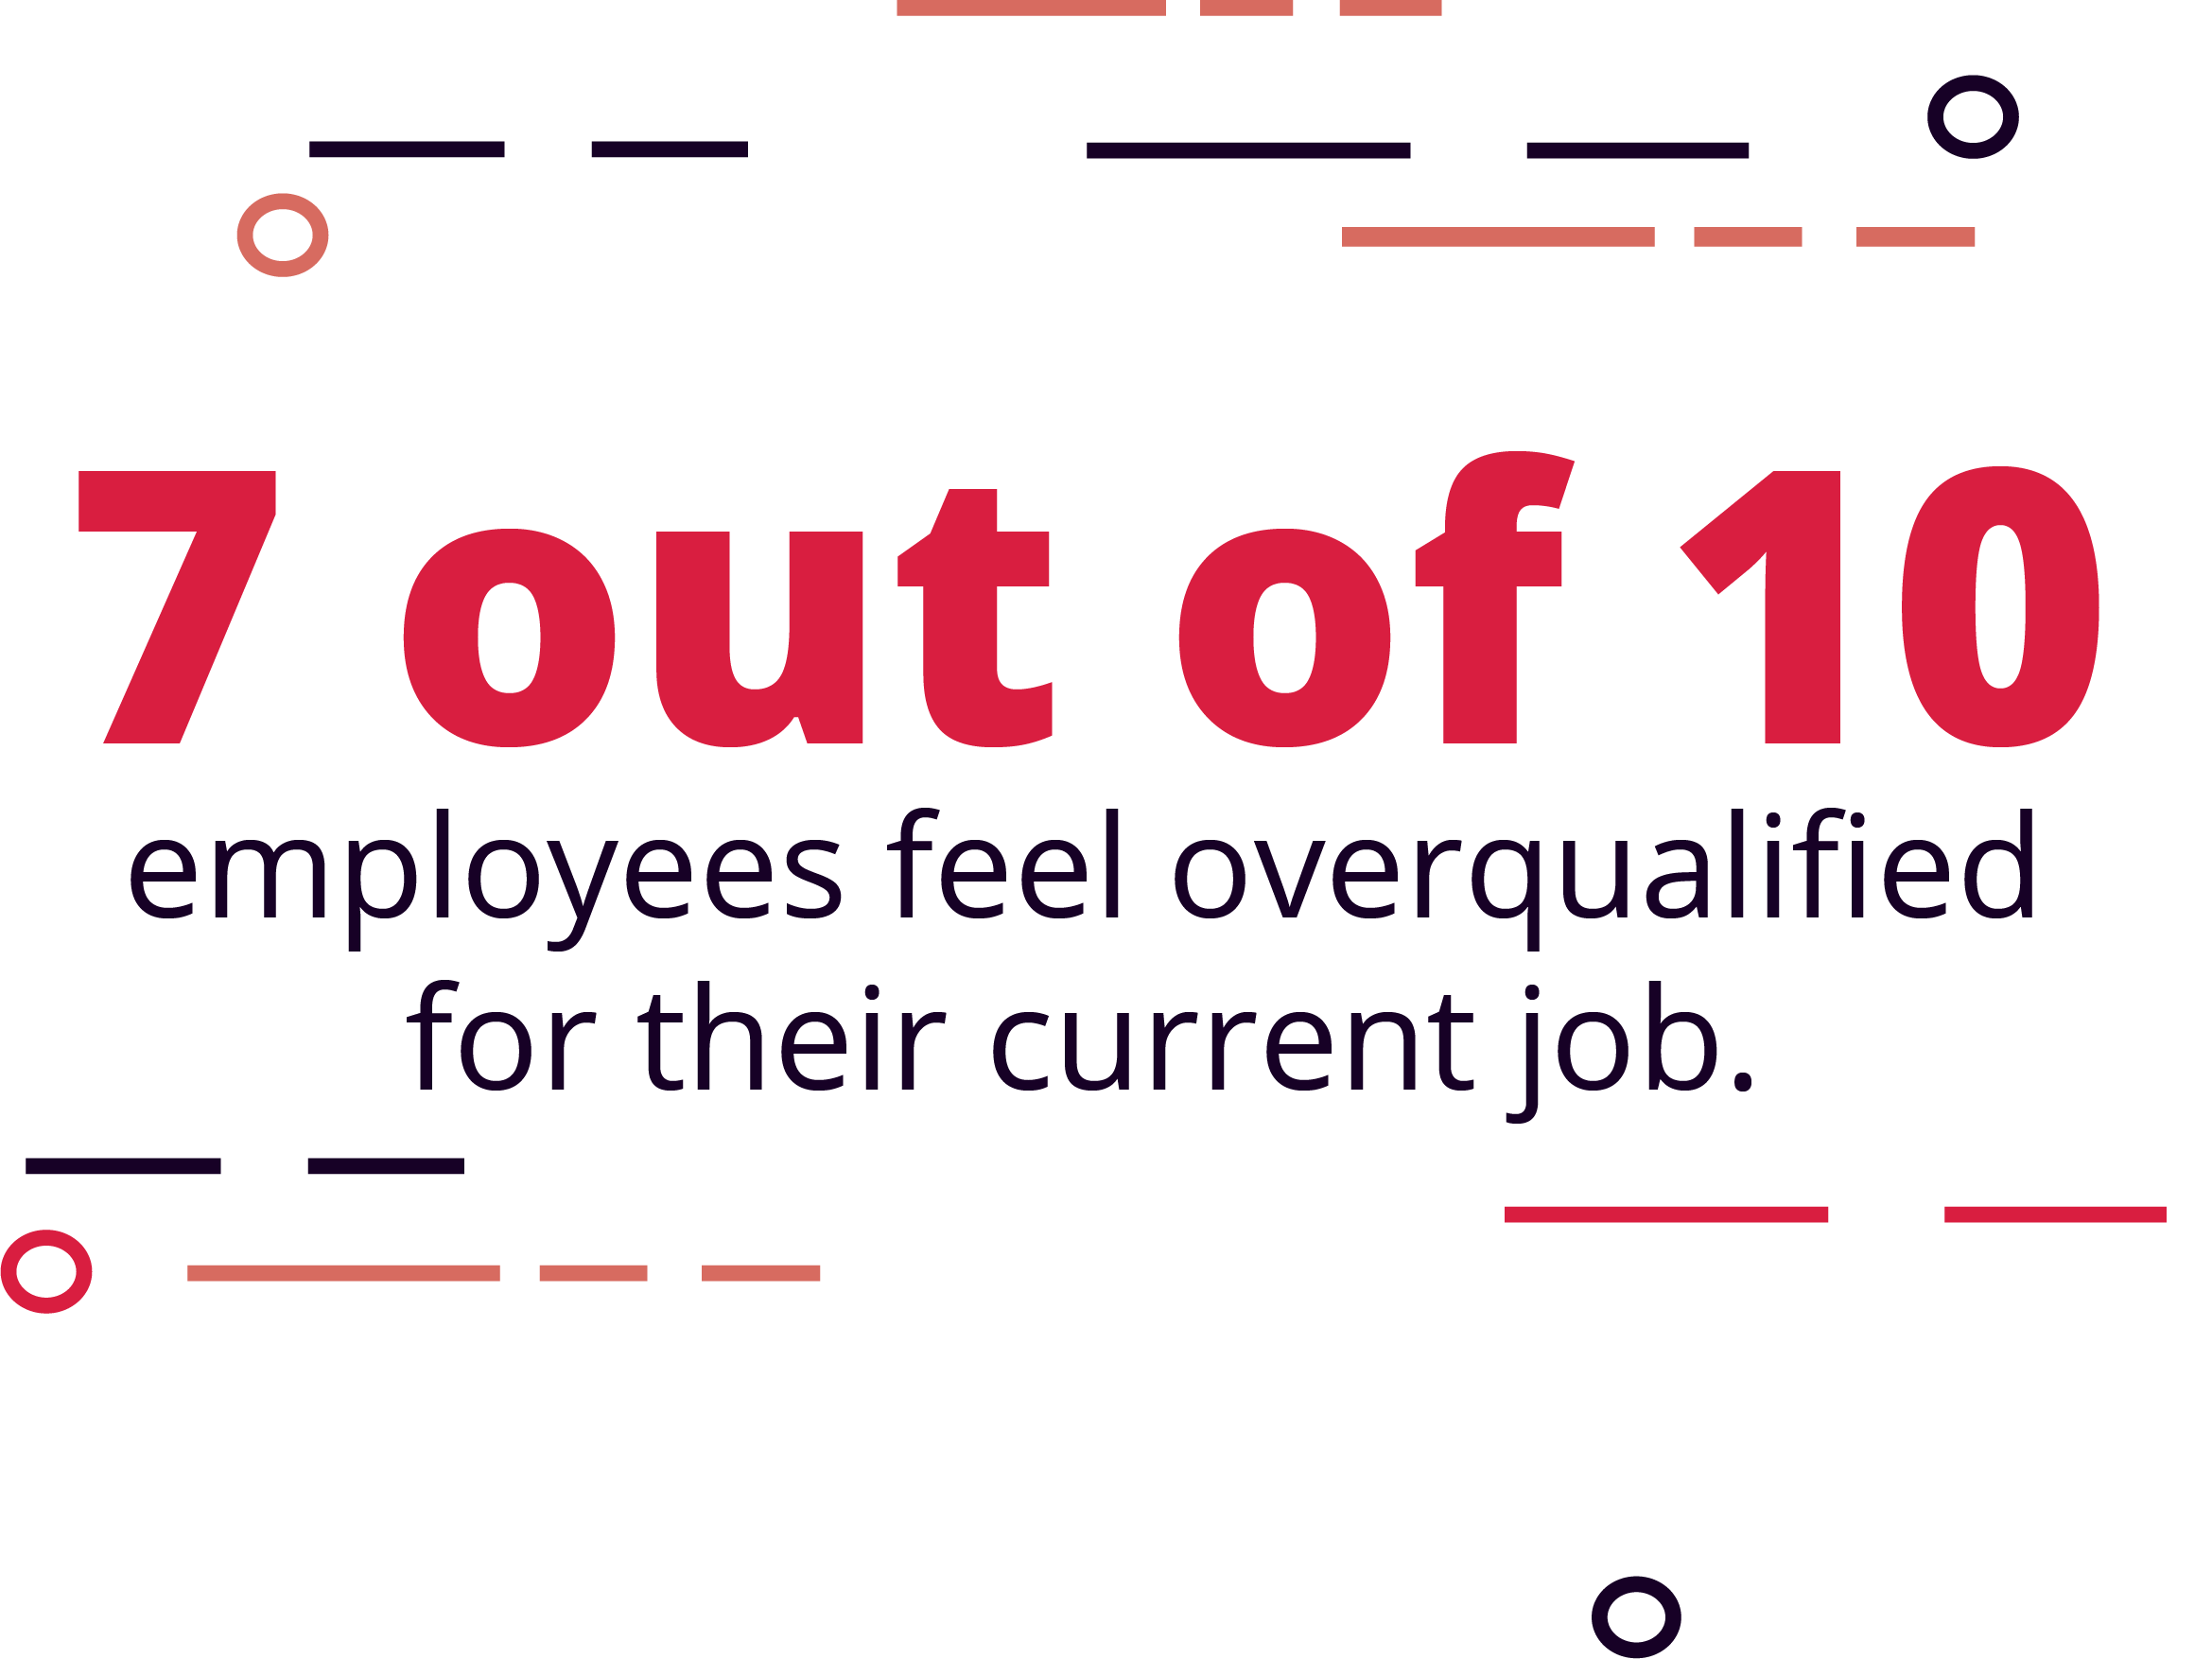 Nearly 7 in 10 employees feel they are overqualified for their current job